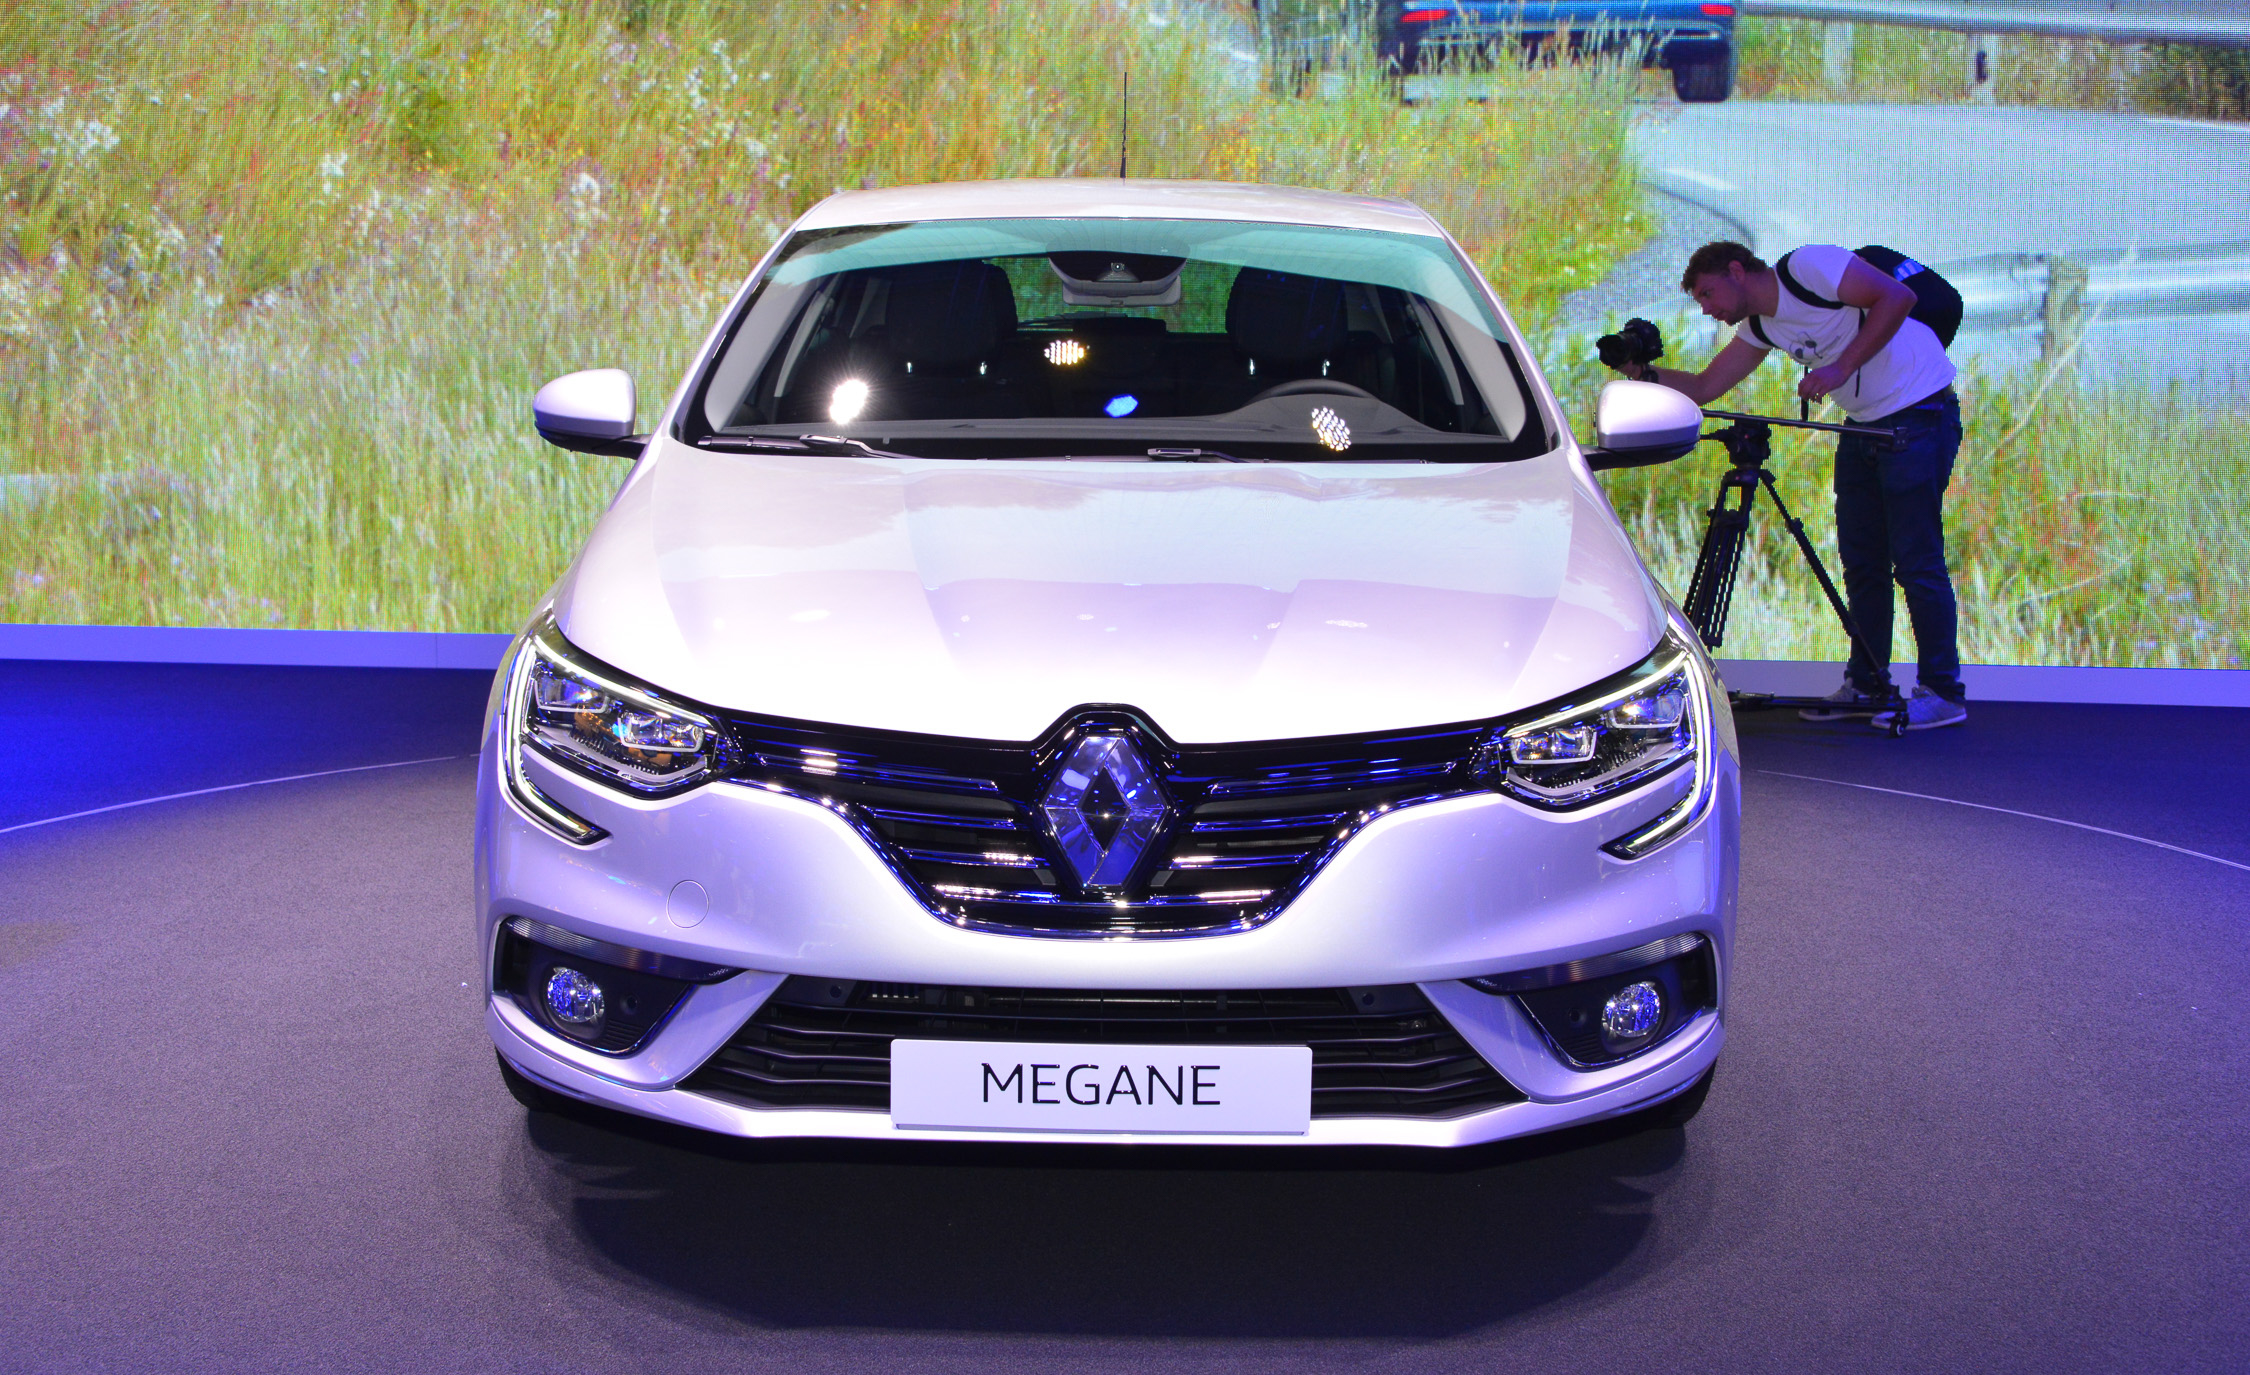 2016 Renault Megane Front End Exterior Design (Photo 4 of 27)